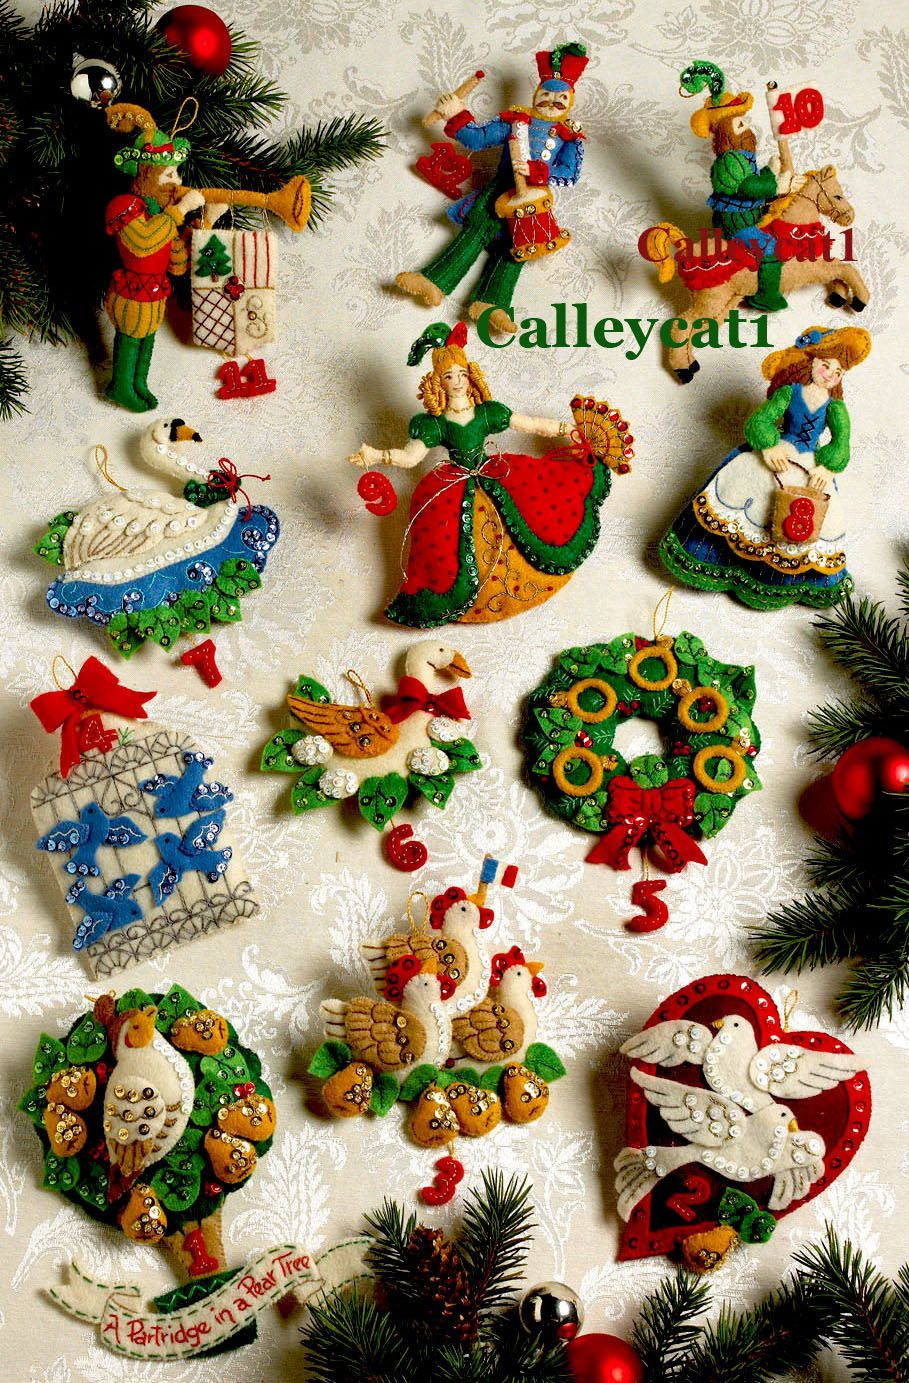 12 Days Of Christmas Bucilla Felt Ornament Kit 86066 Fth Studio International Felt Christmas Ornaments Felt Christmas Felt Christmas Stockings